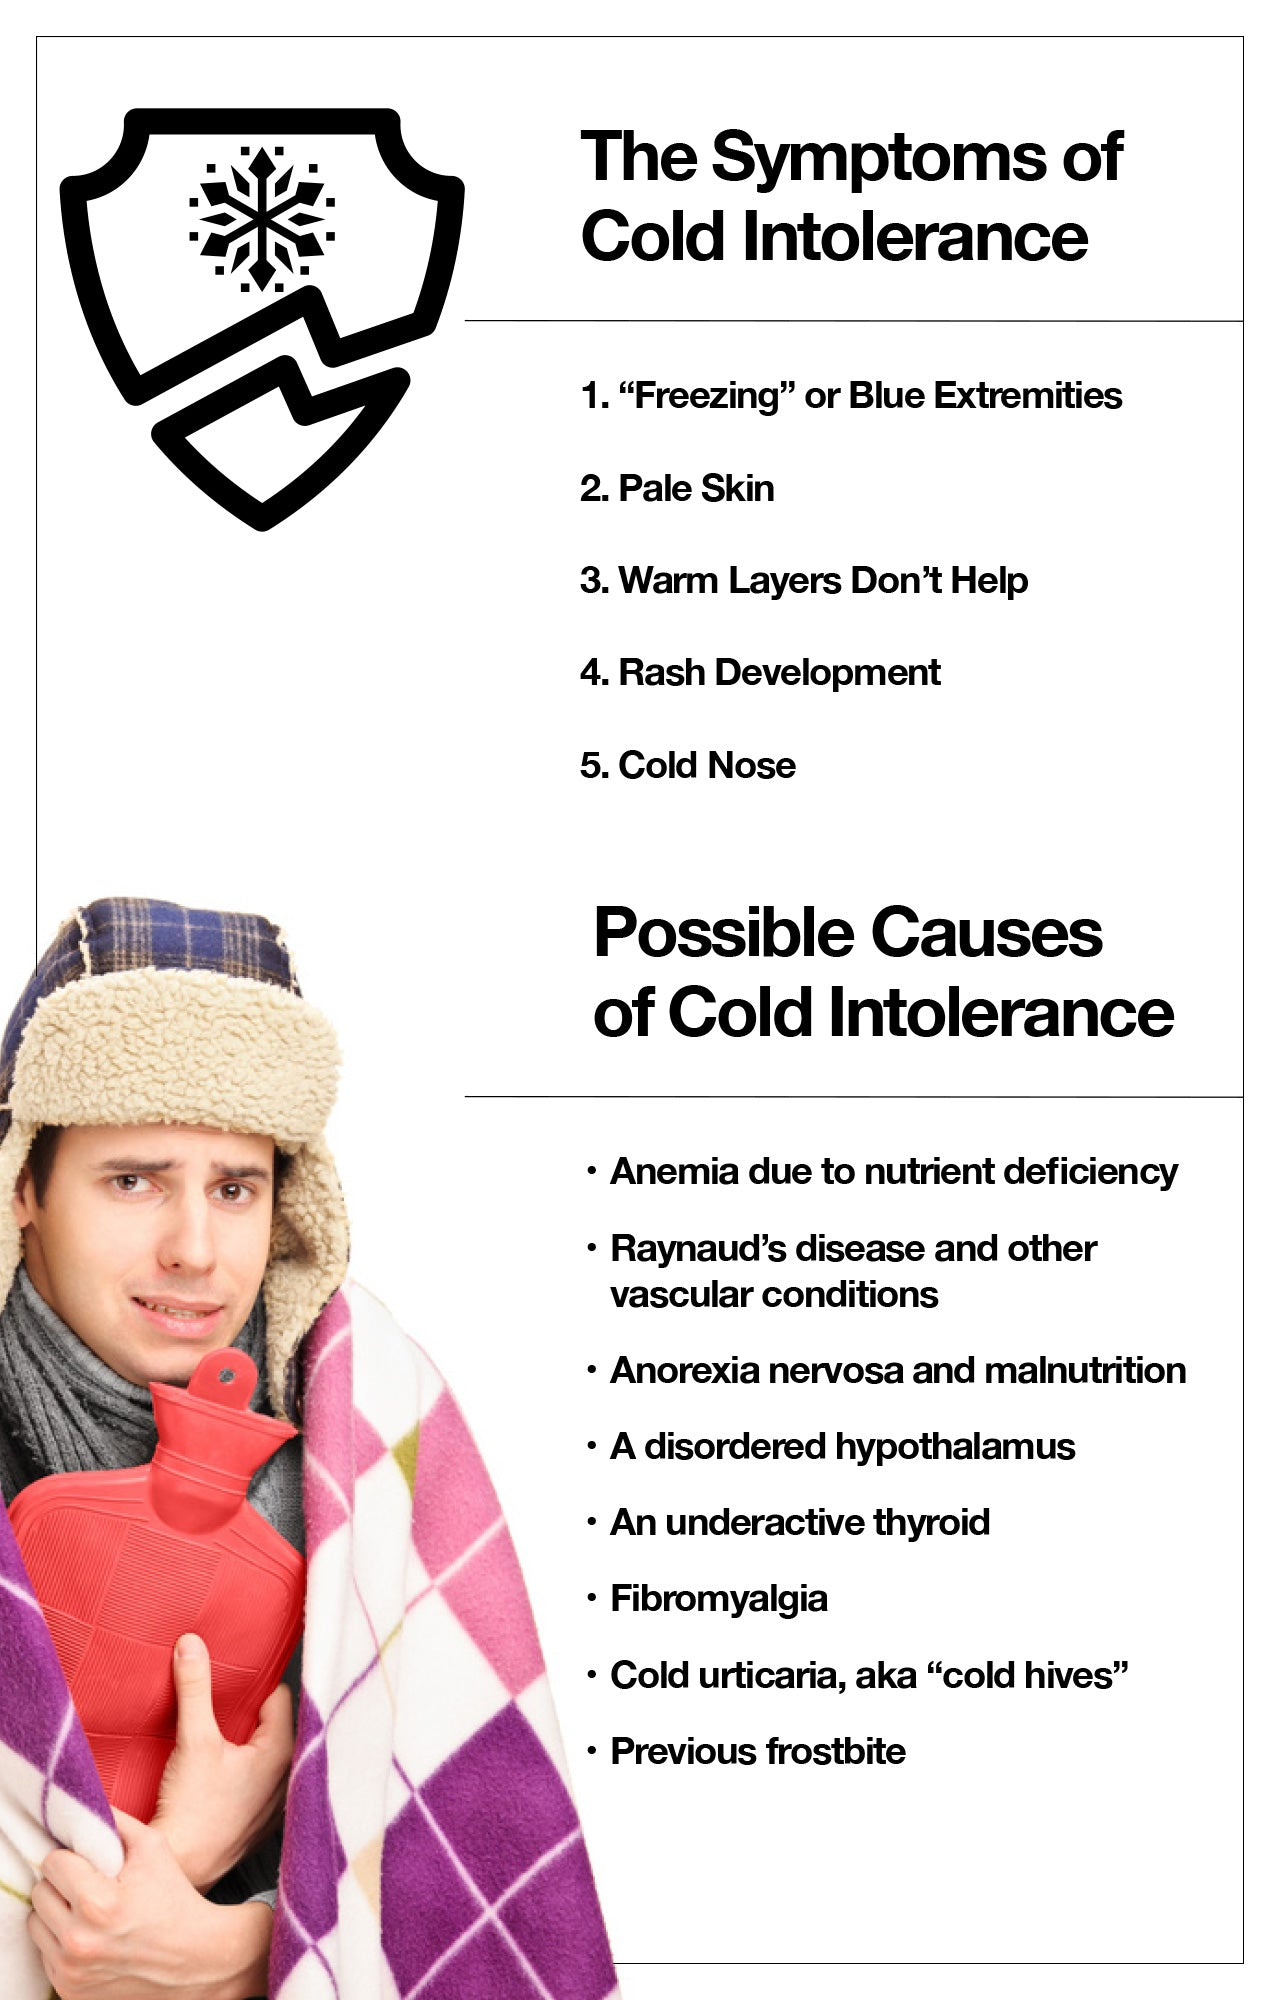 The Symptoms of Cold Intolerance